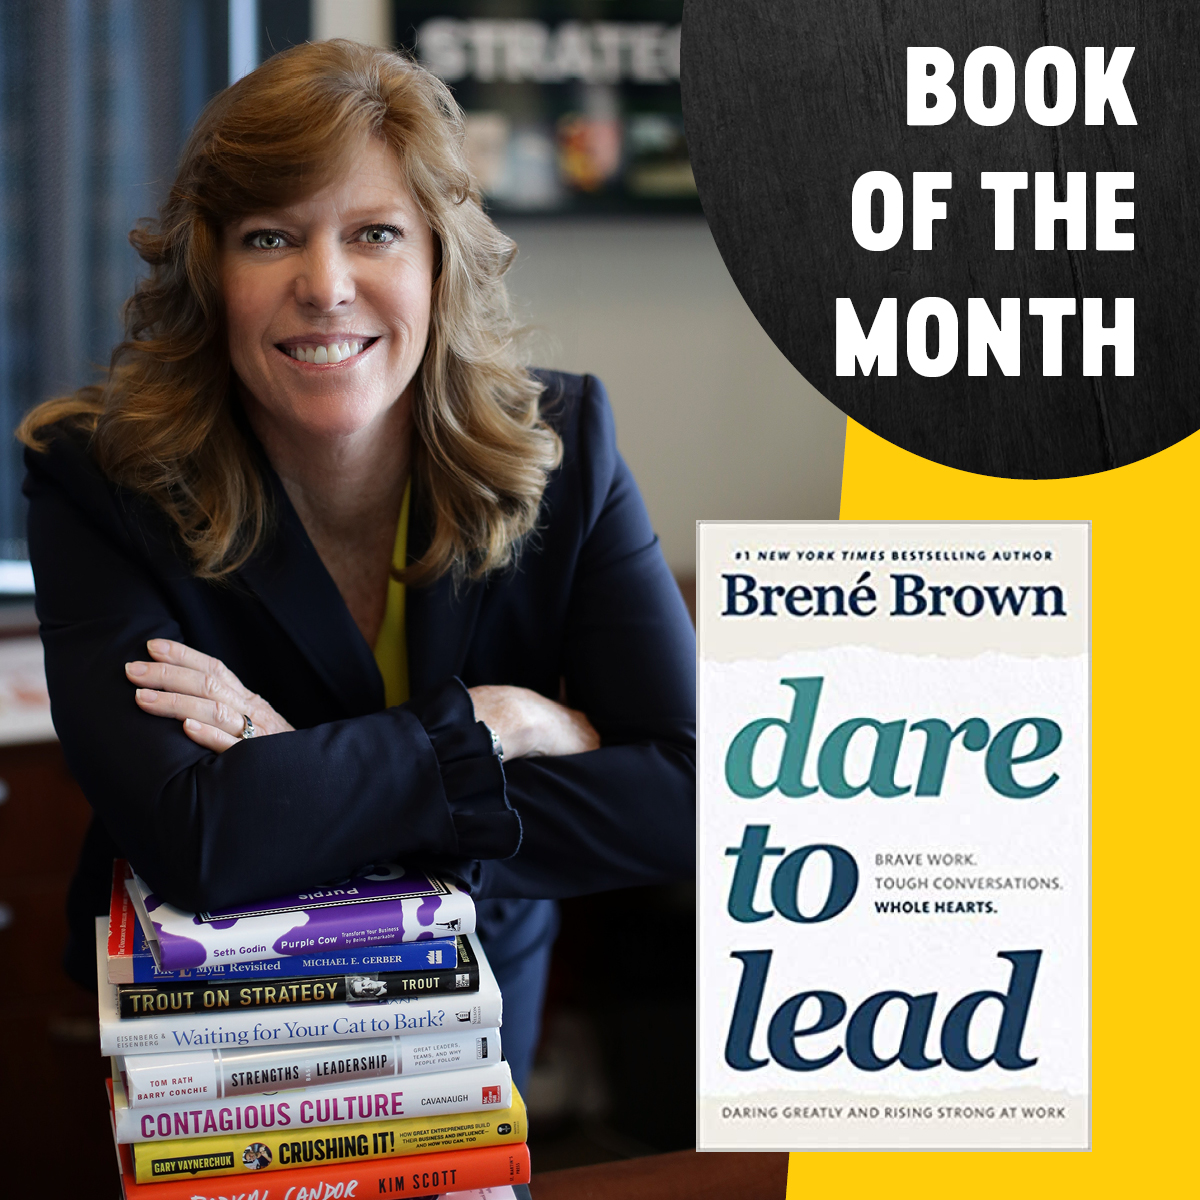 AMS BOOK OF THE MONTH: DARE TO LEAD, By Brené Brown